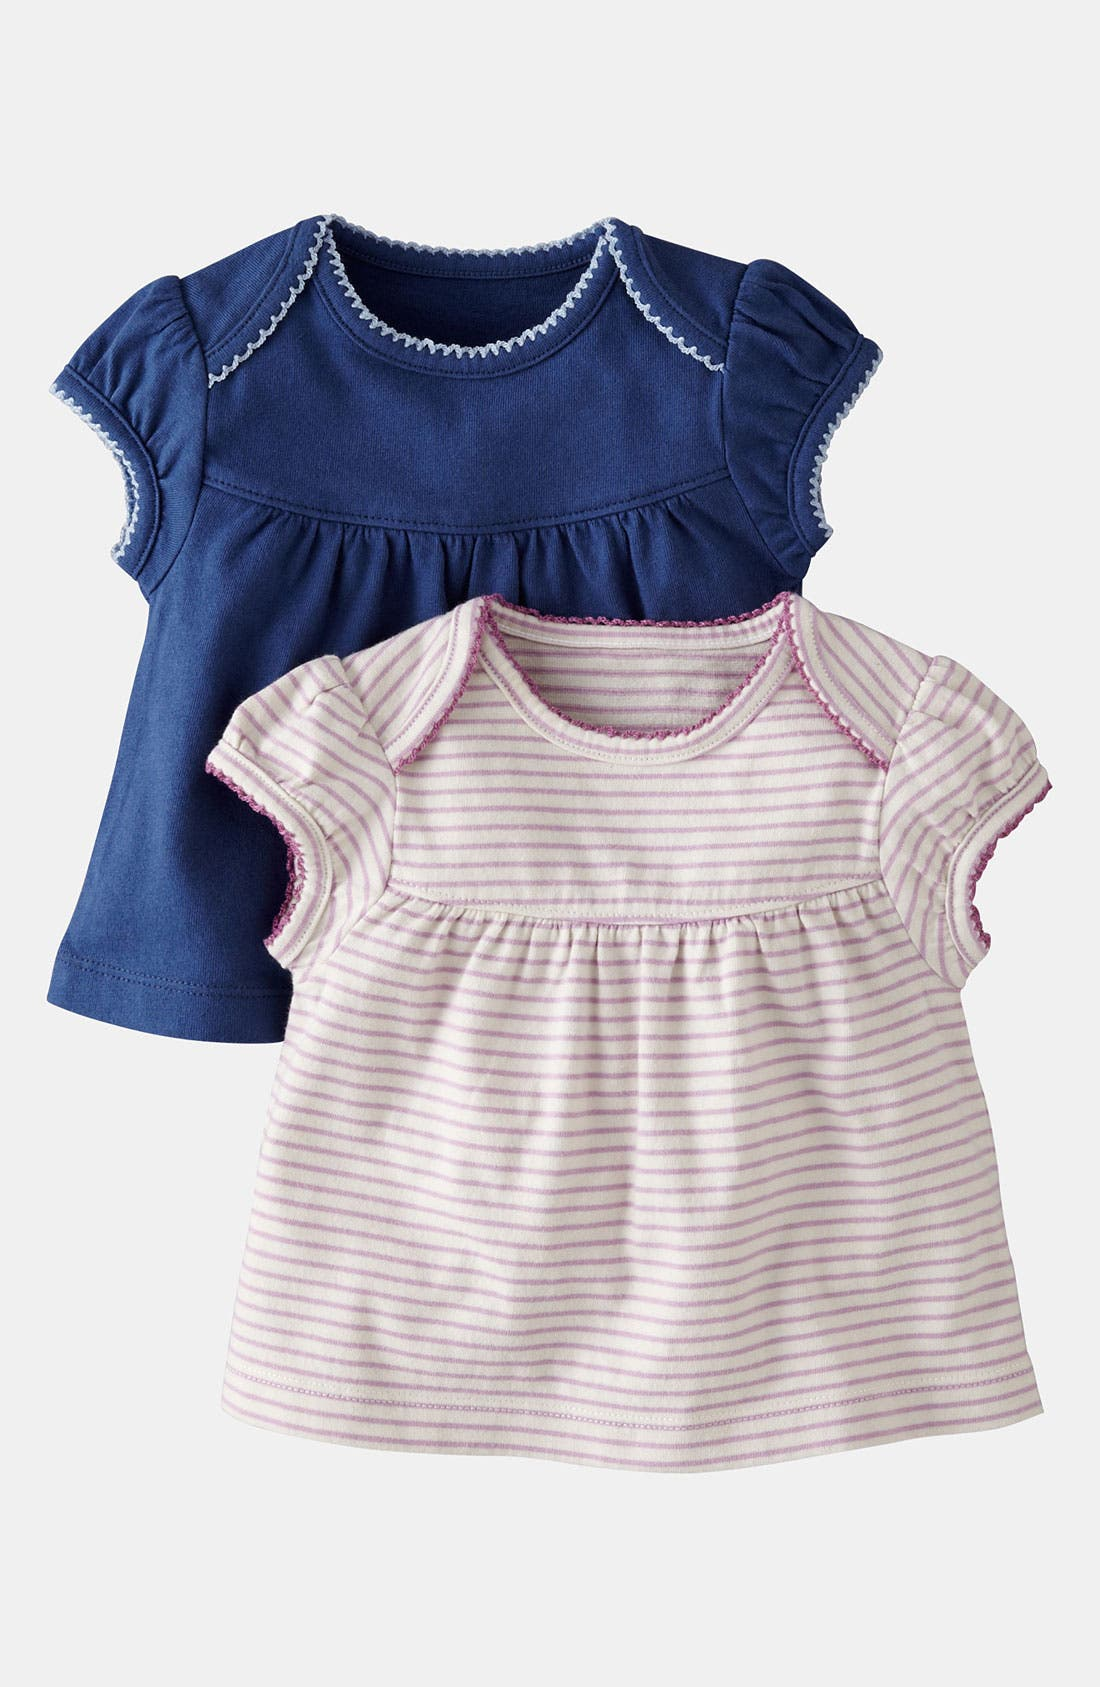 Alternate Image 1 Selected - Mini Boden 'Pretty' Tee (2-Pack) (Baby)